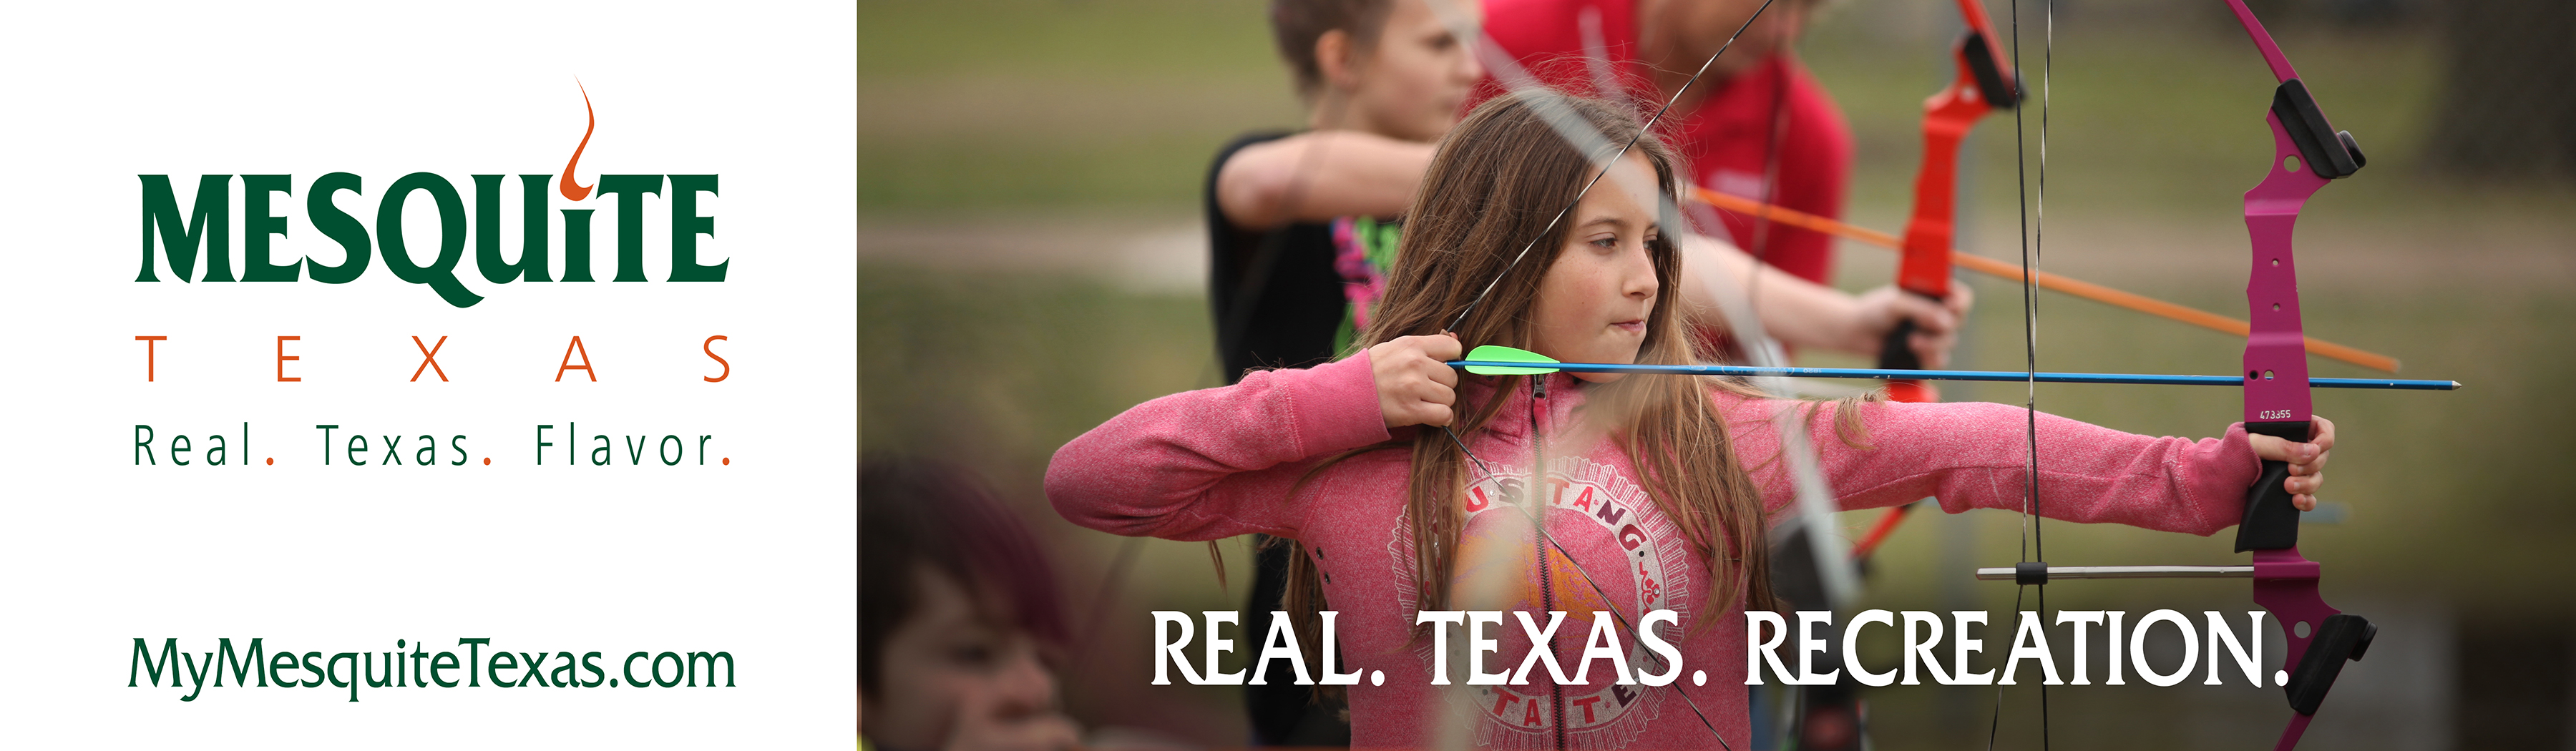 Real Texas Recreation-Summer 2015-6x2